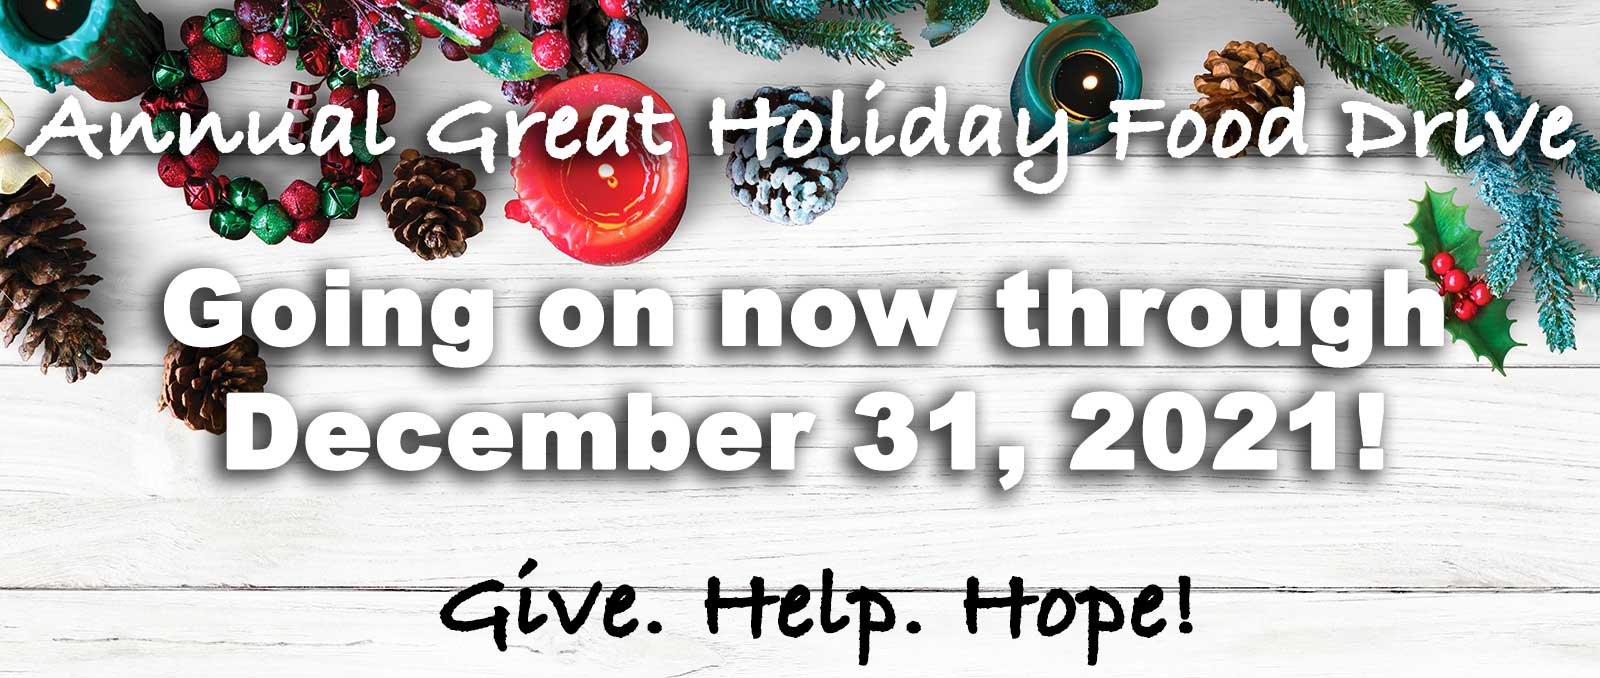 SIGN-UP TO BE A DROP SITE OR SPONSOR NOW! 11th Annual Great Holiday Food Drive